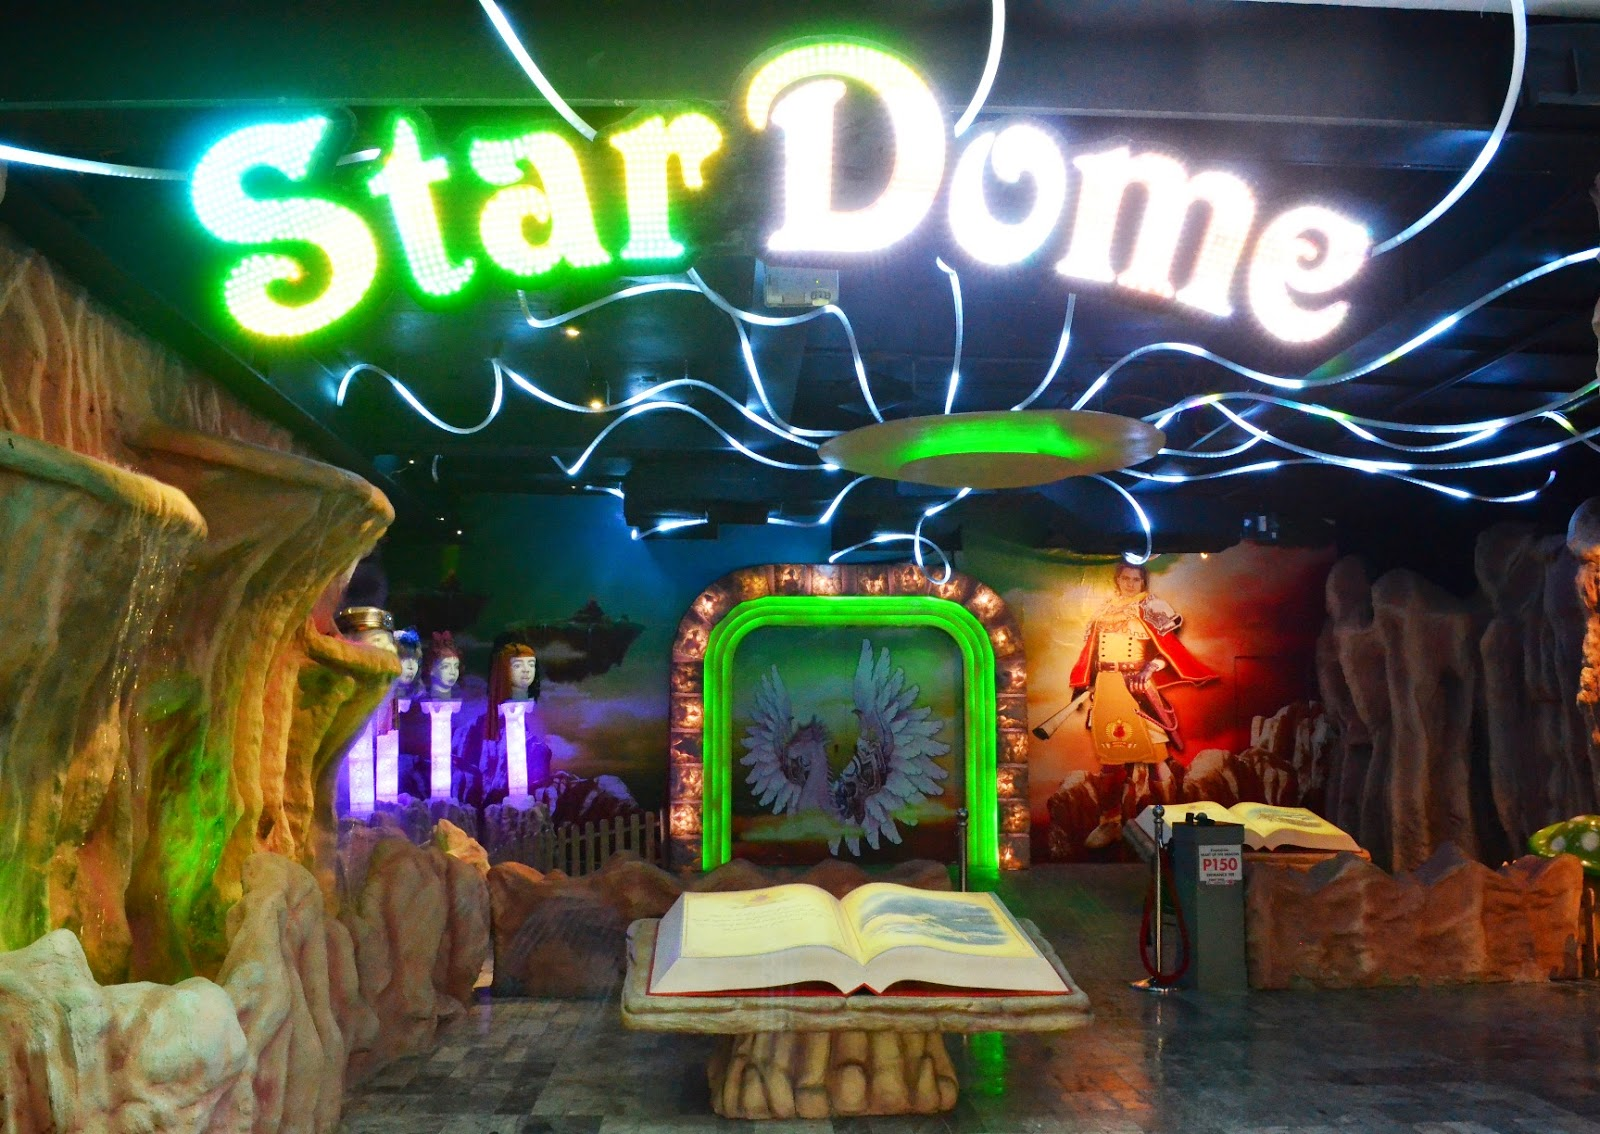 Star City's Star Dome